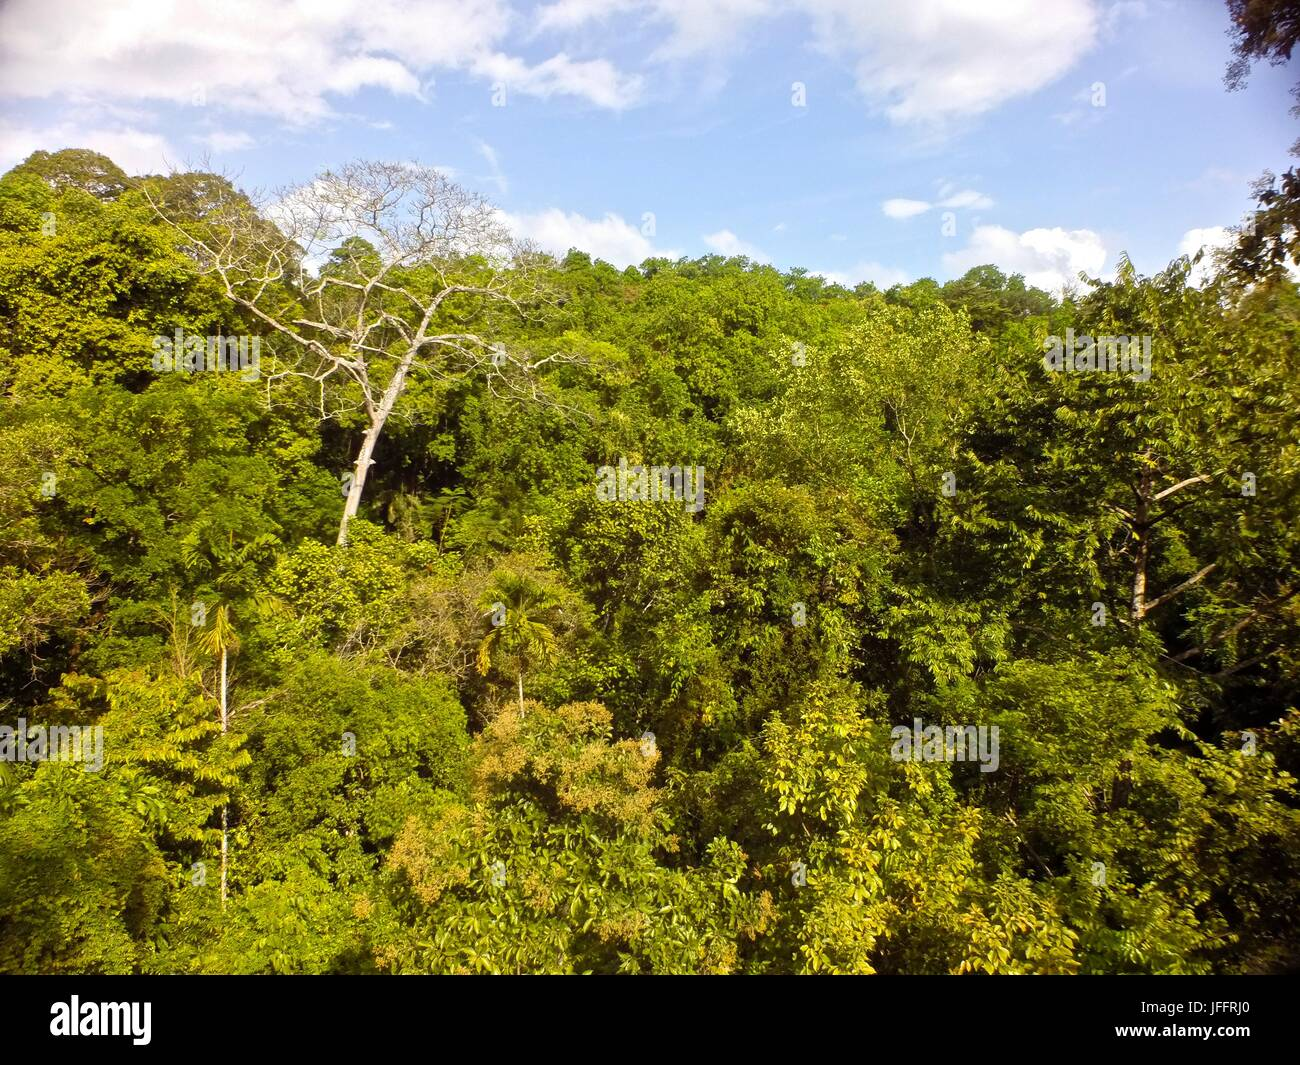 Rainforest on Barro Colorado Island. - Stock Image